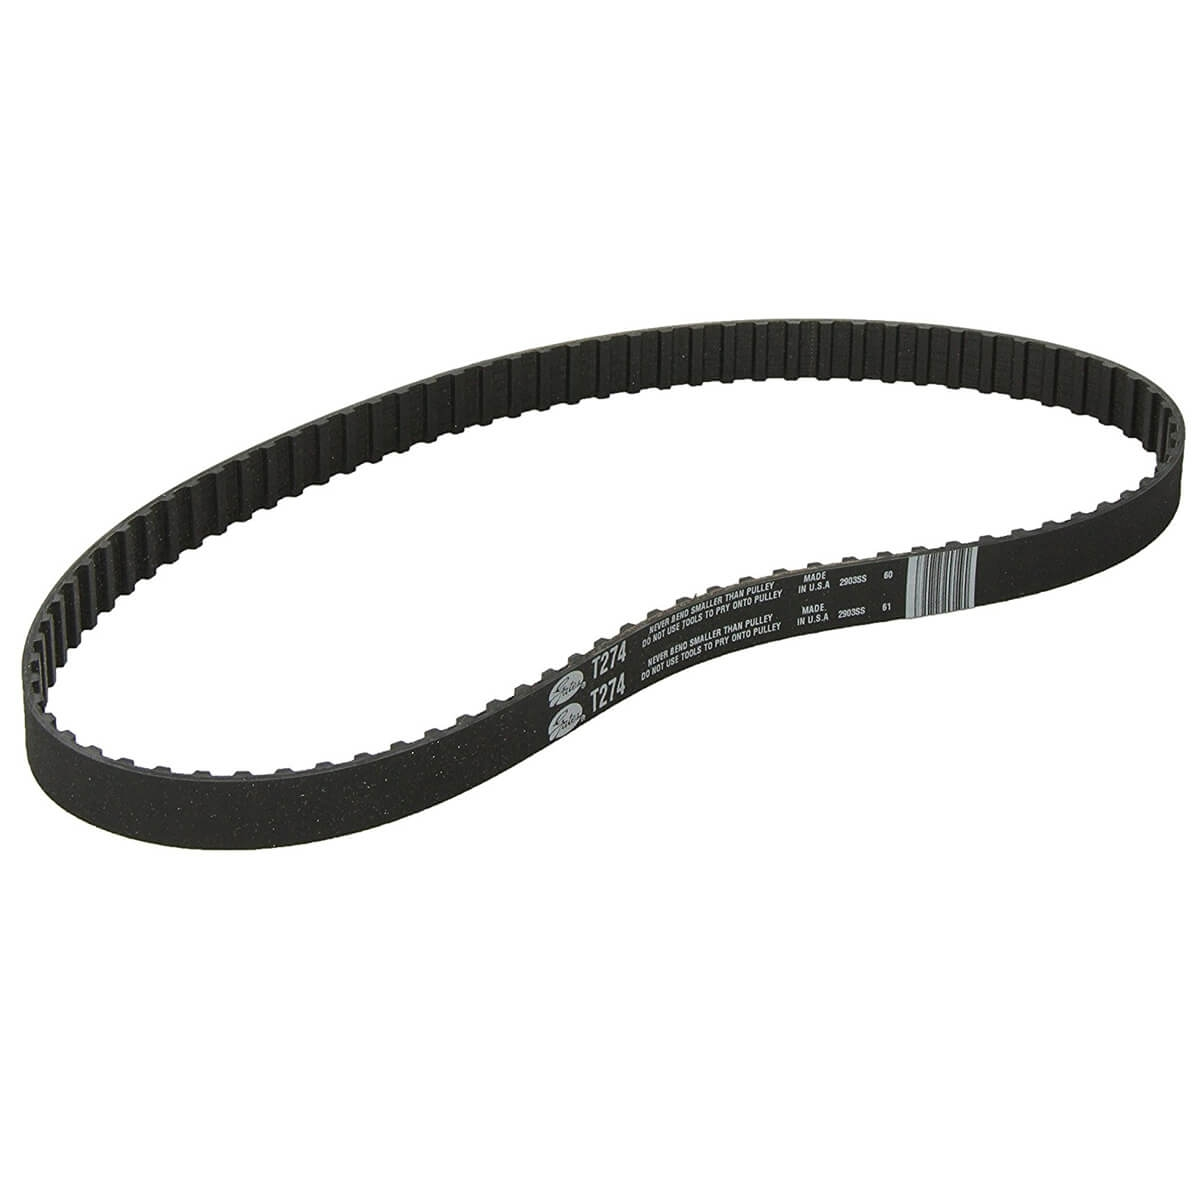 CHRYSLER VOYAGER IV Timing Belt